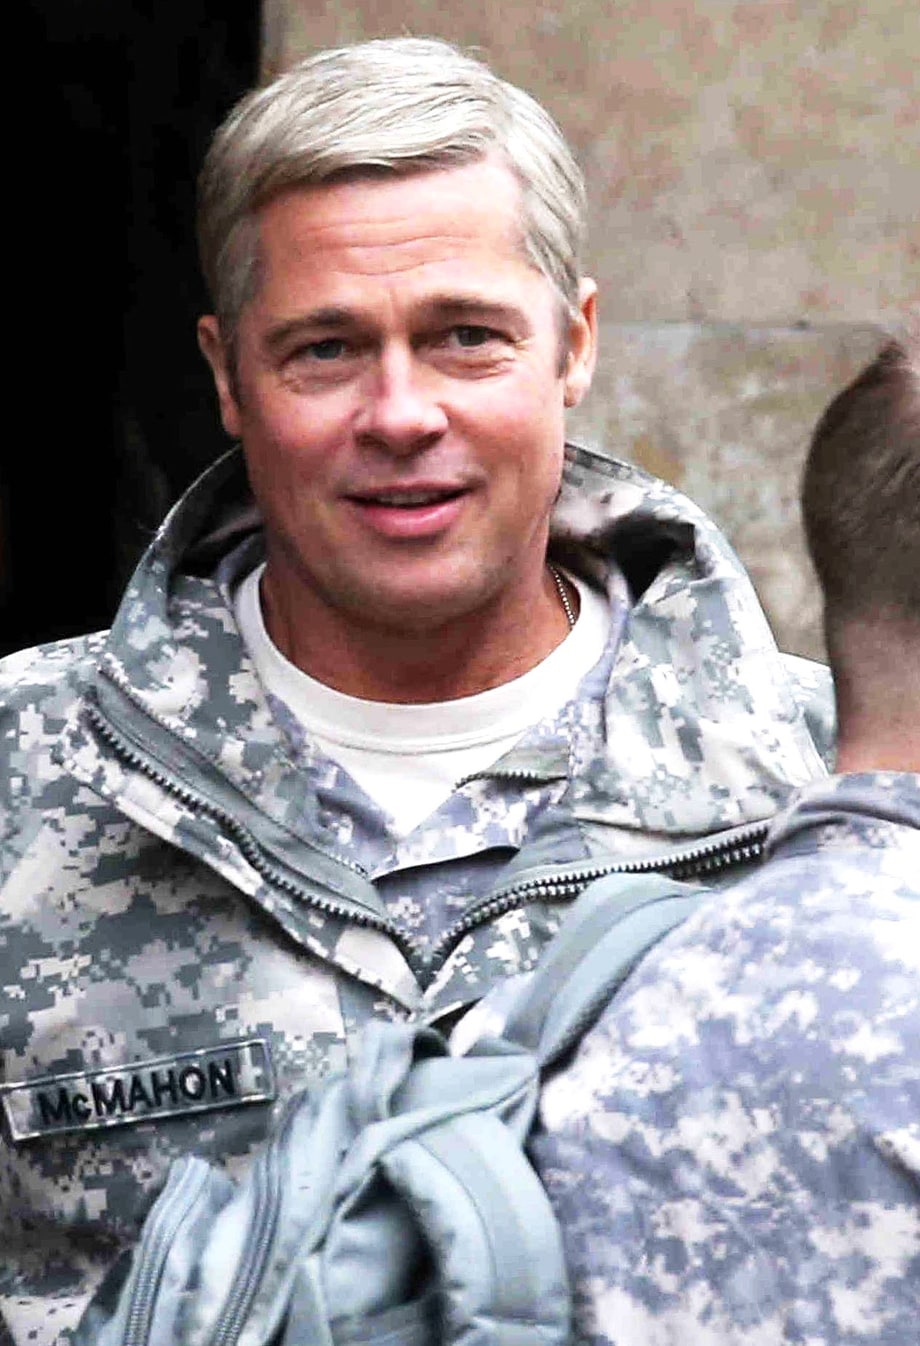 Brad Pitt is 'General Glenn McMahon' in the Netflix original film 'War Machine'.